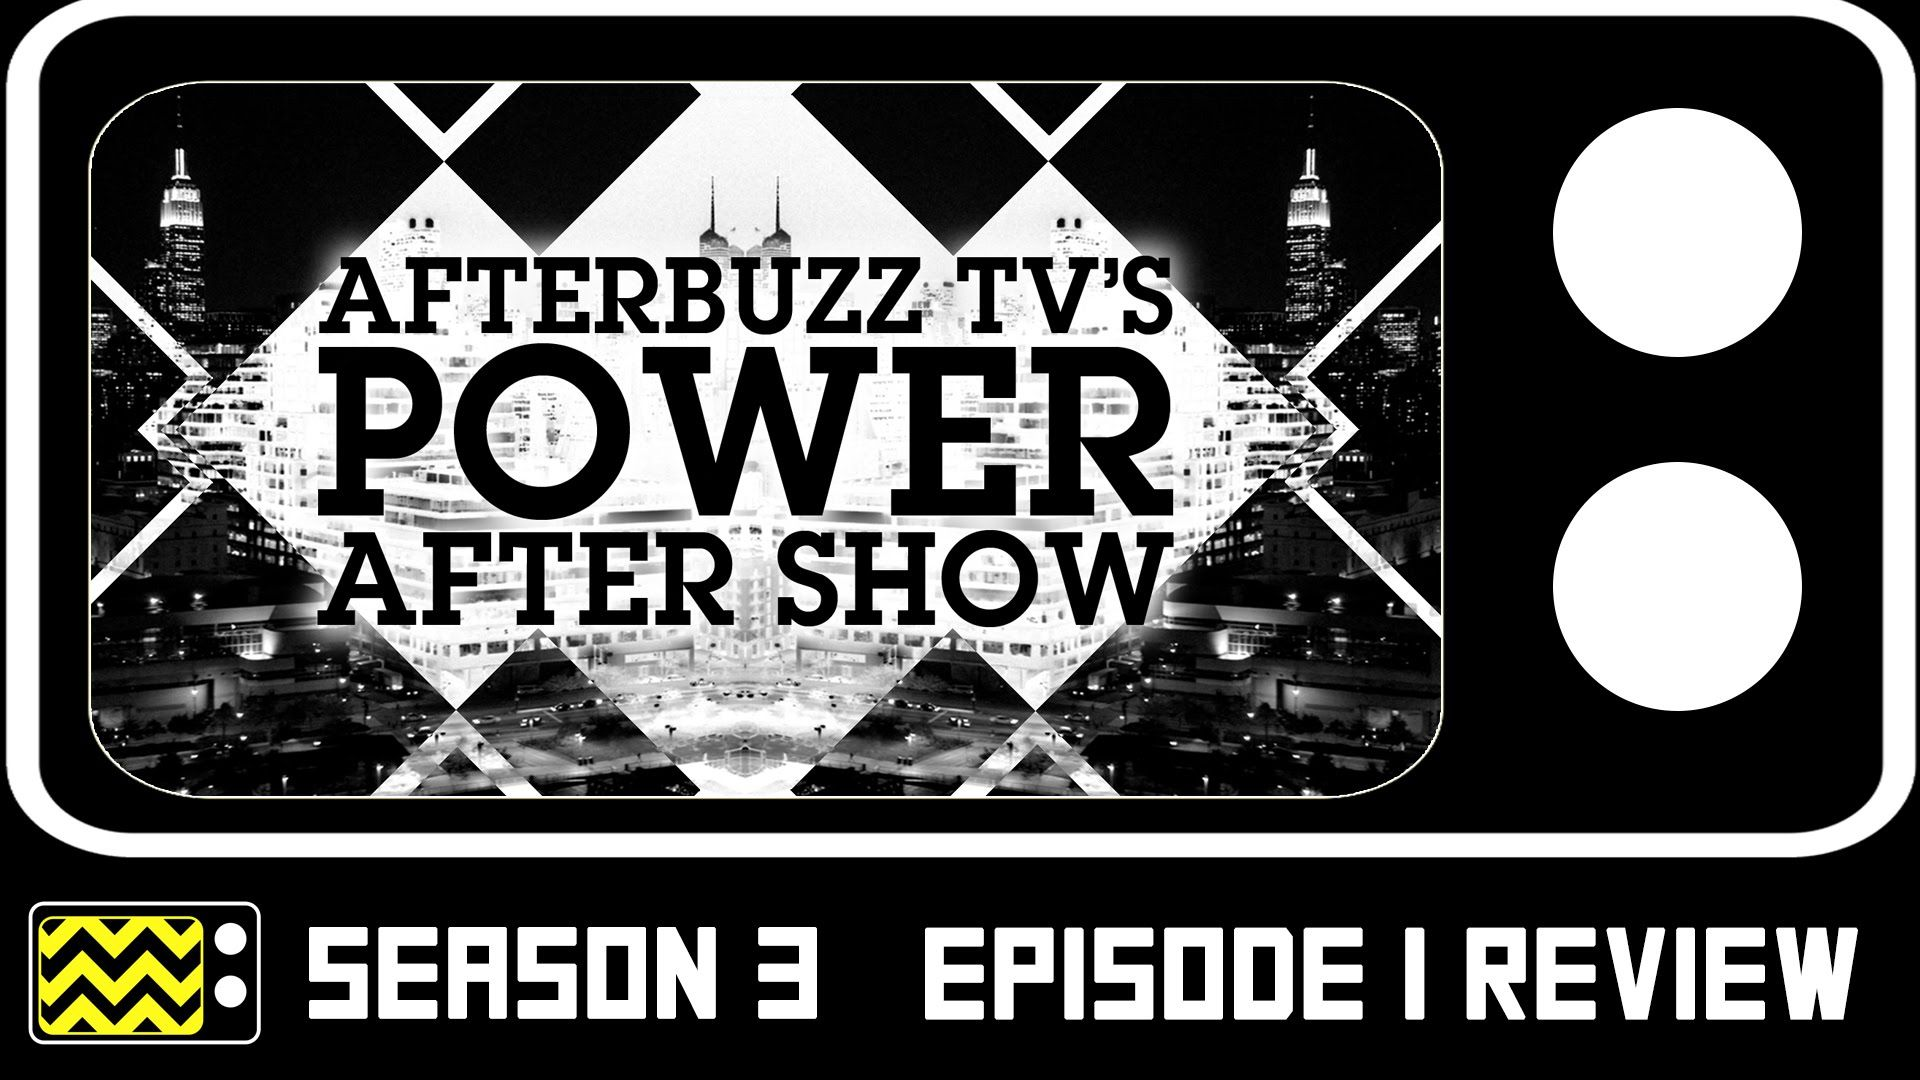 Power Season 3 Episode 1 Review & After Show | AfterBuzz TV | Cable ...